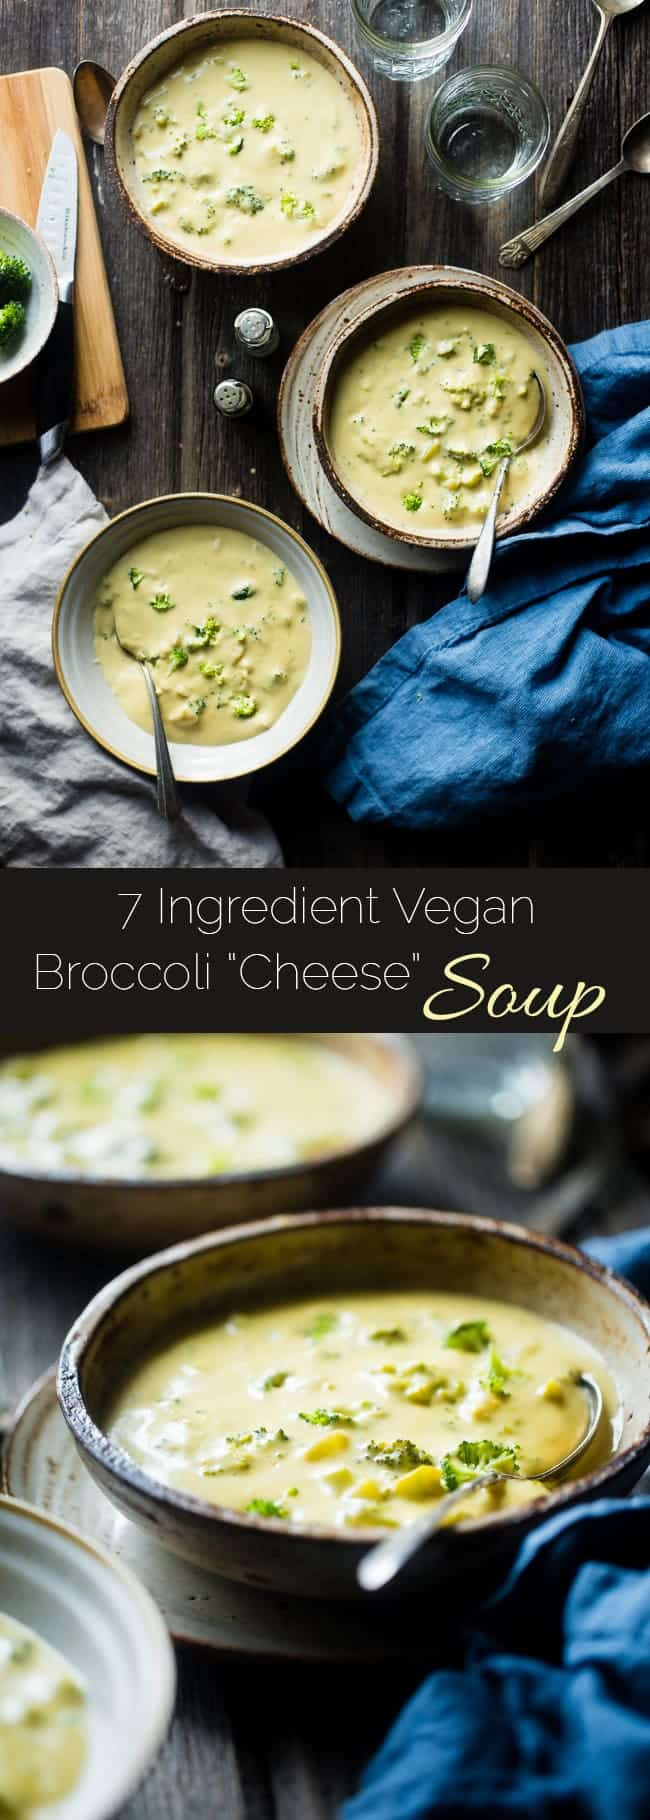 7 Ingredient Vegan Broccoli Cheese Soup - SO thick, rich and creamy you would never know it's dairy free, gluten free and healthy! It's ready in only 15 minutes and SO easy to make! | Foodfaithfitness.com | @FoodFaithFit